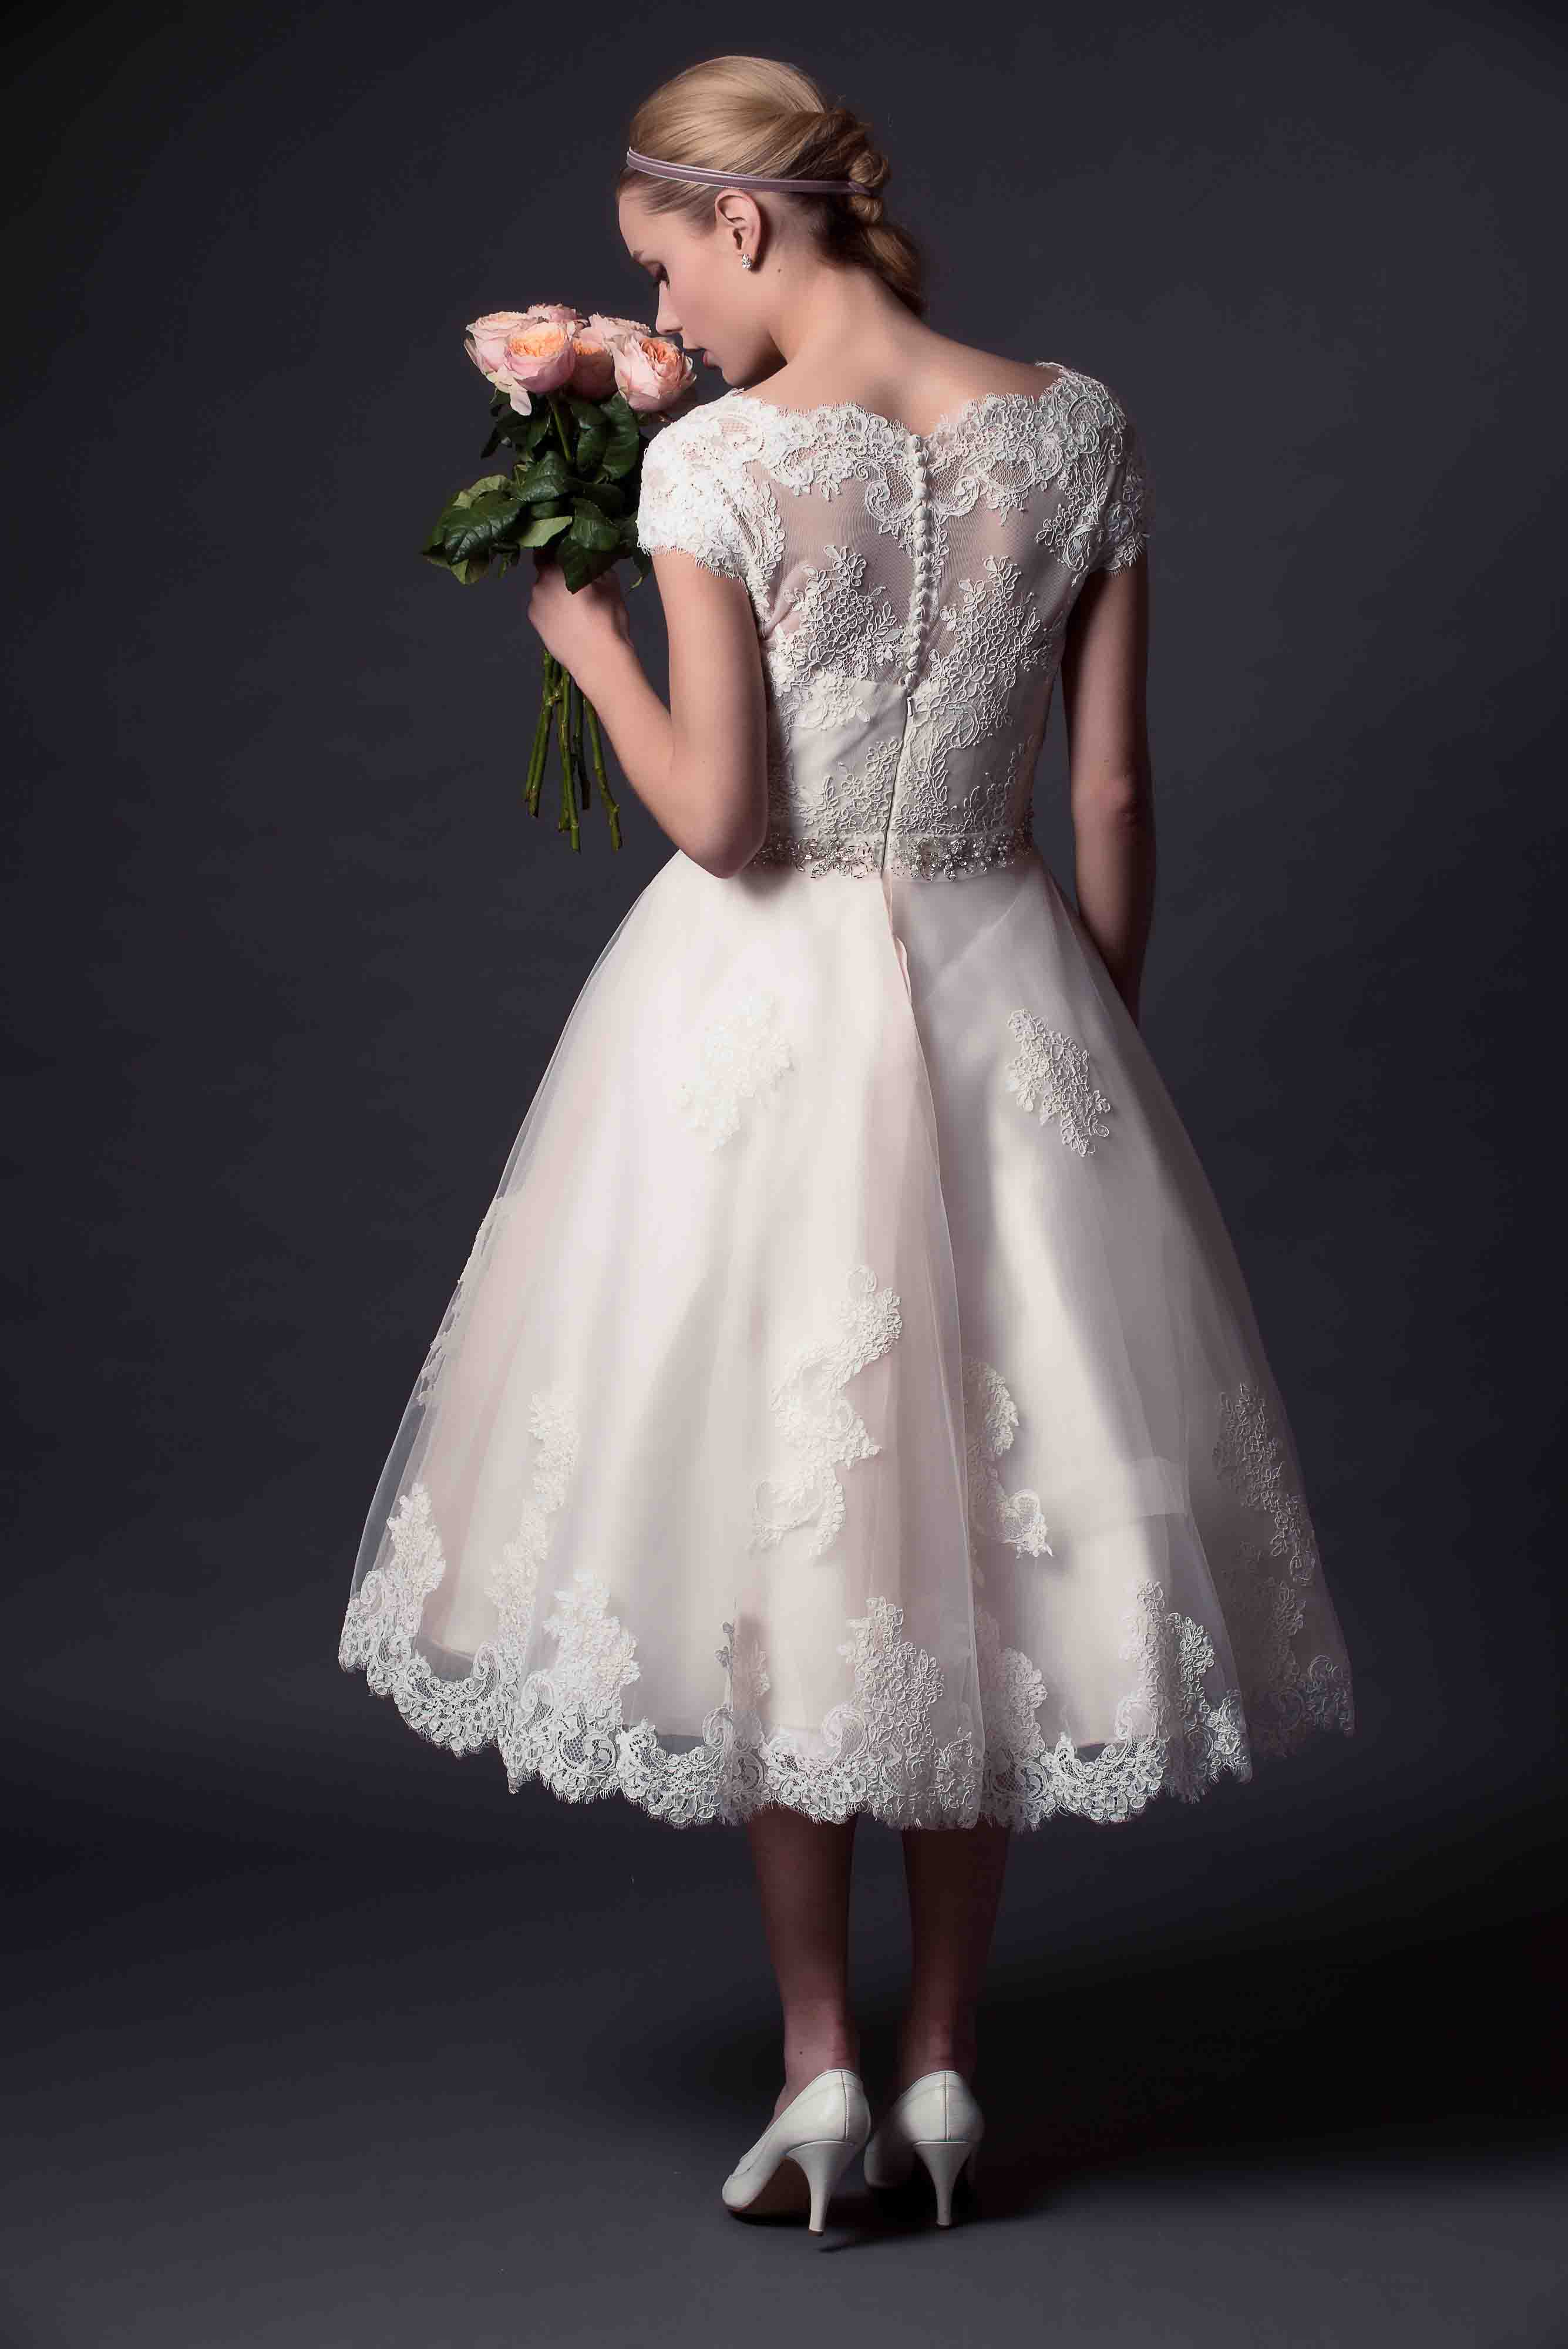 Rita Mae - Wedding Dress Designer available at The Bridal Boutique Jersey